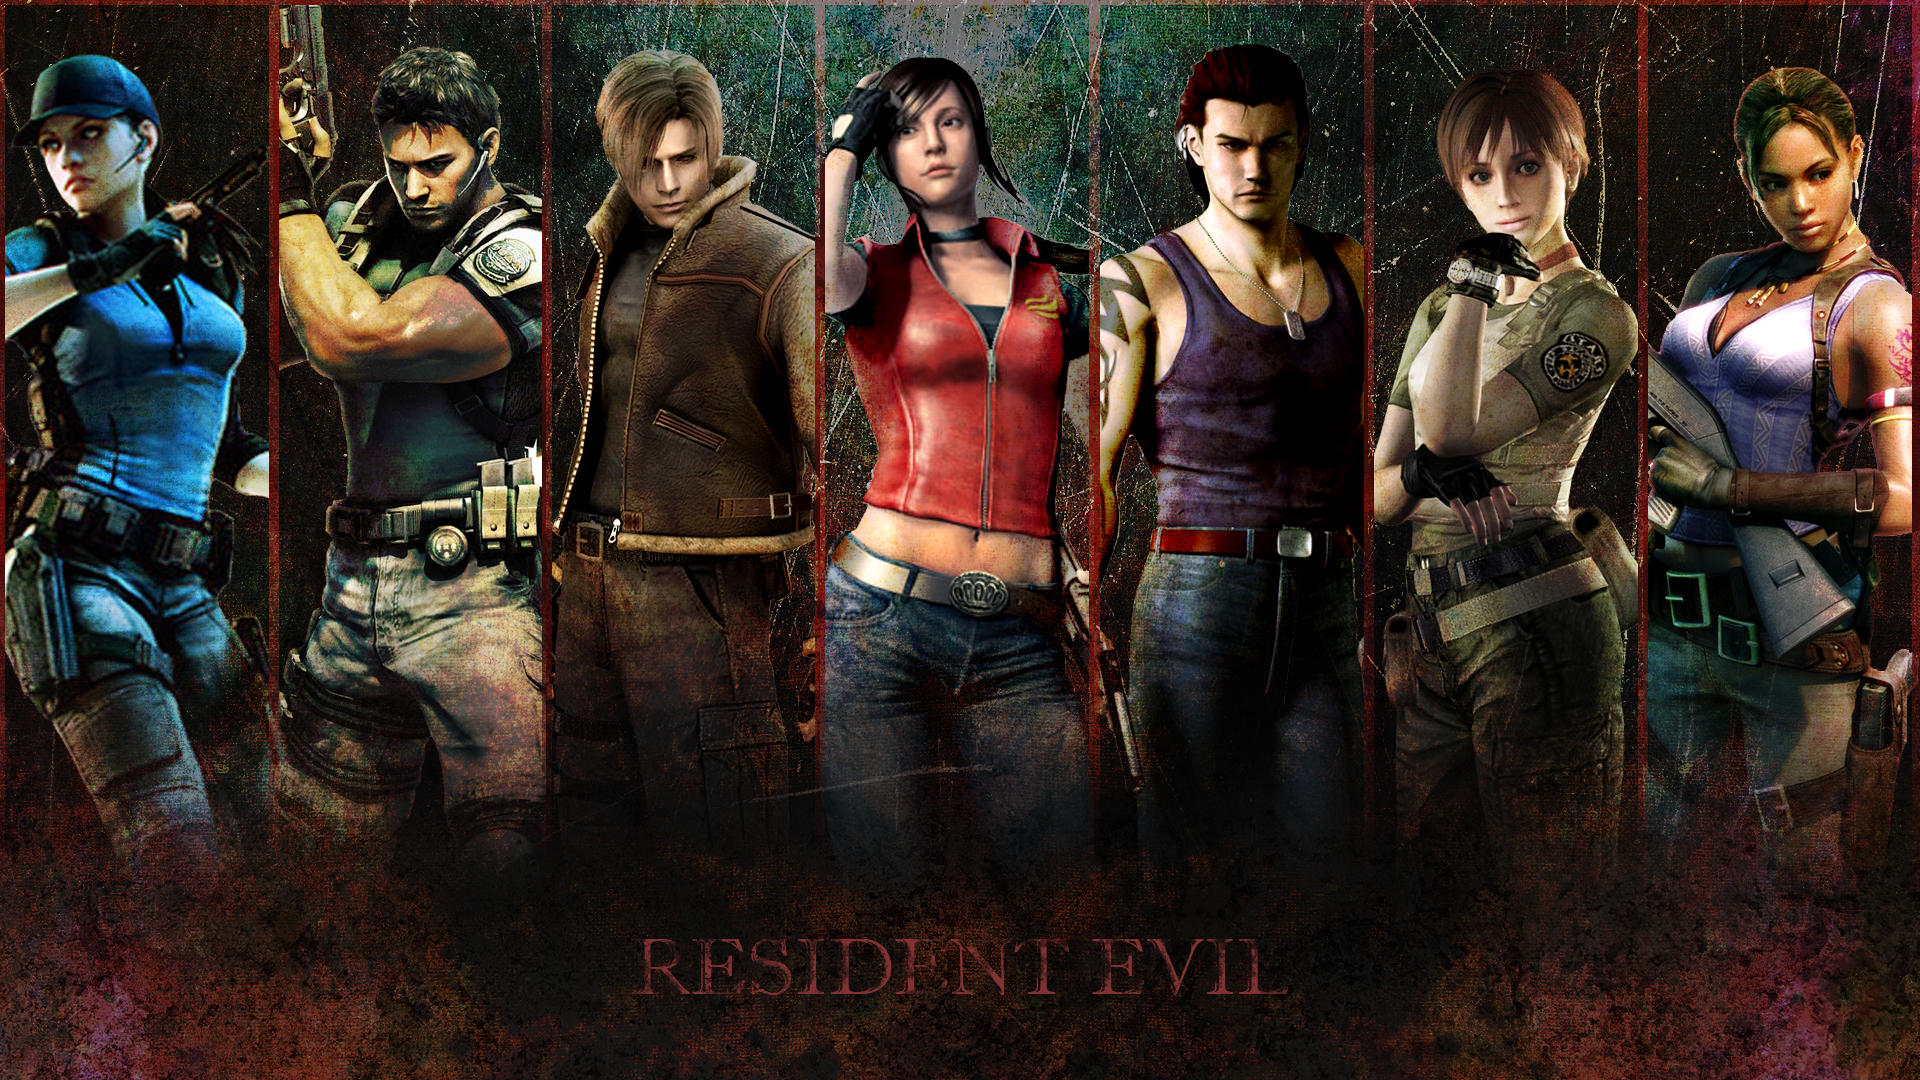 resident evil 6 wallpaper hd